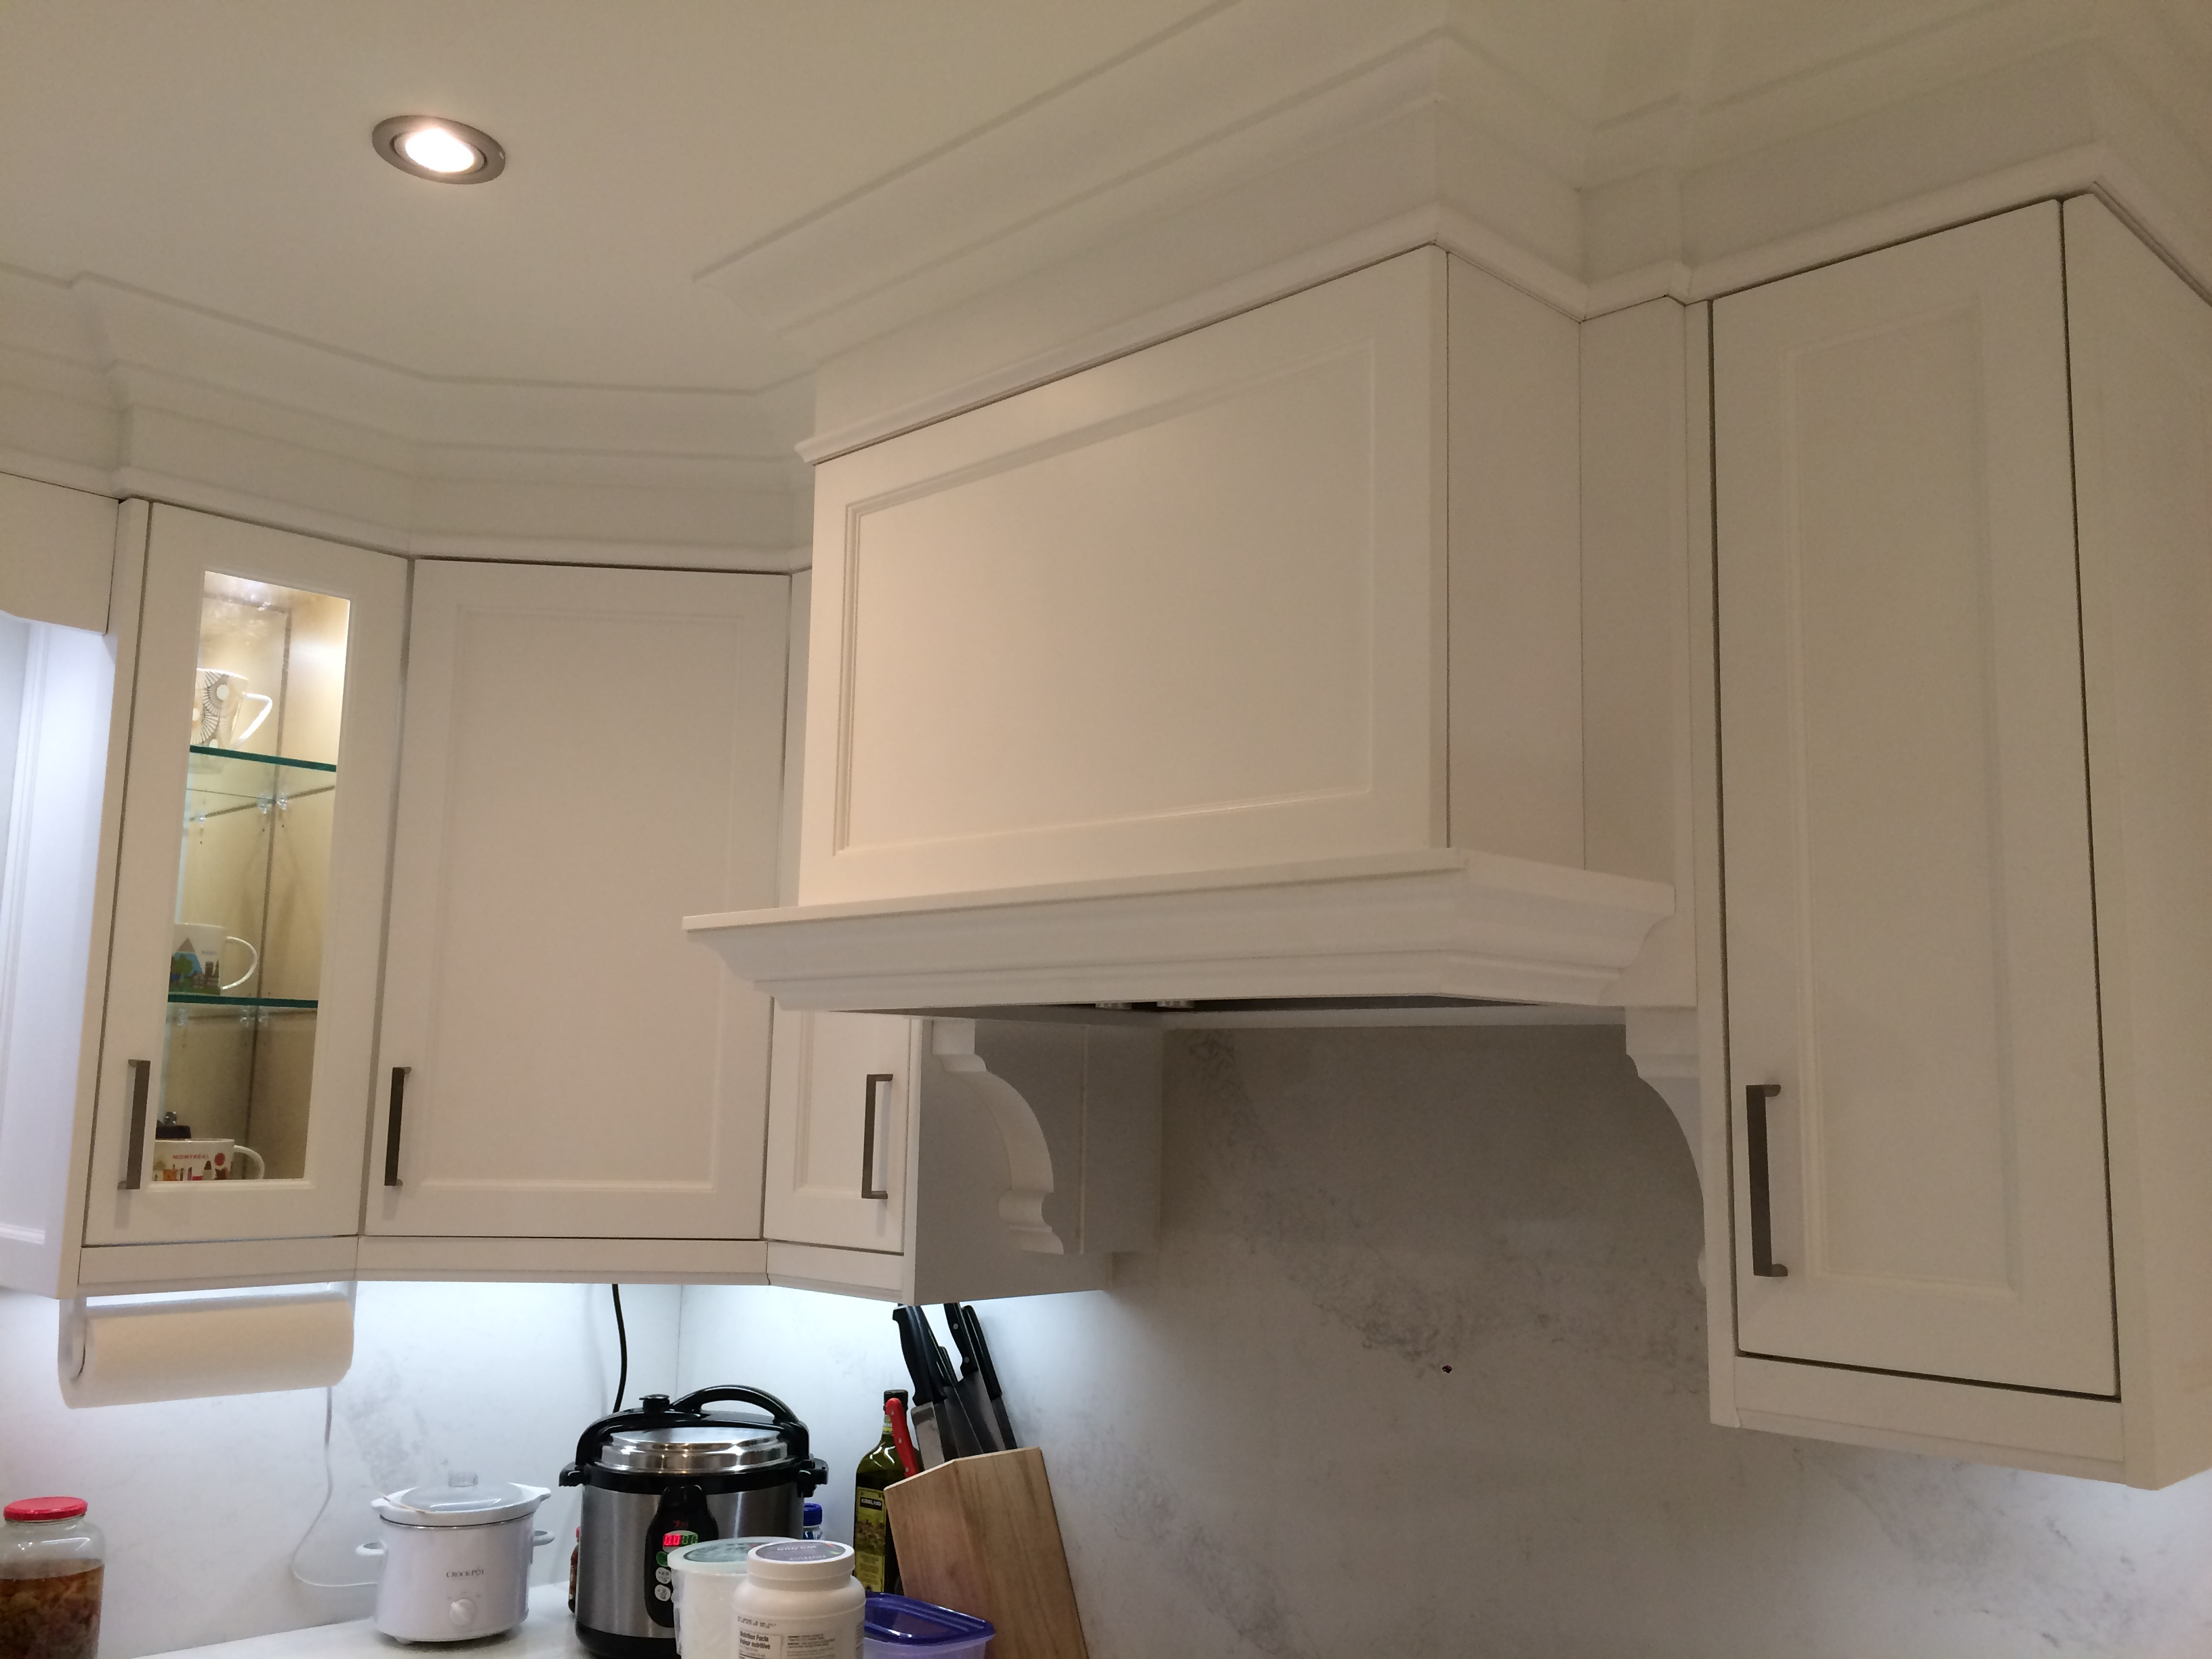 Kitchen cabinetry picture -above oven